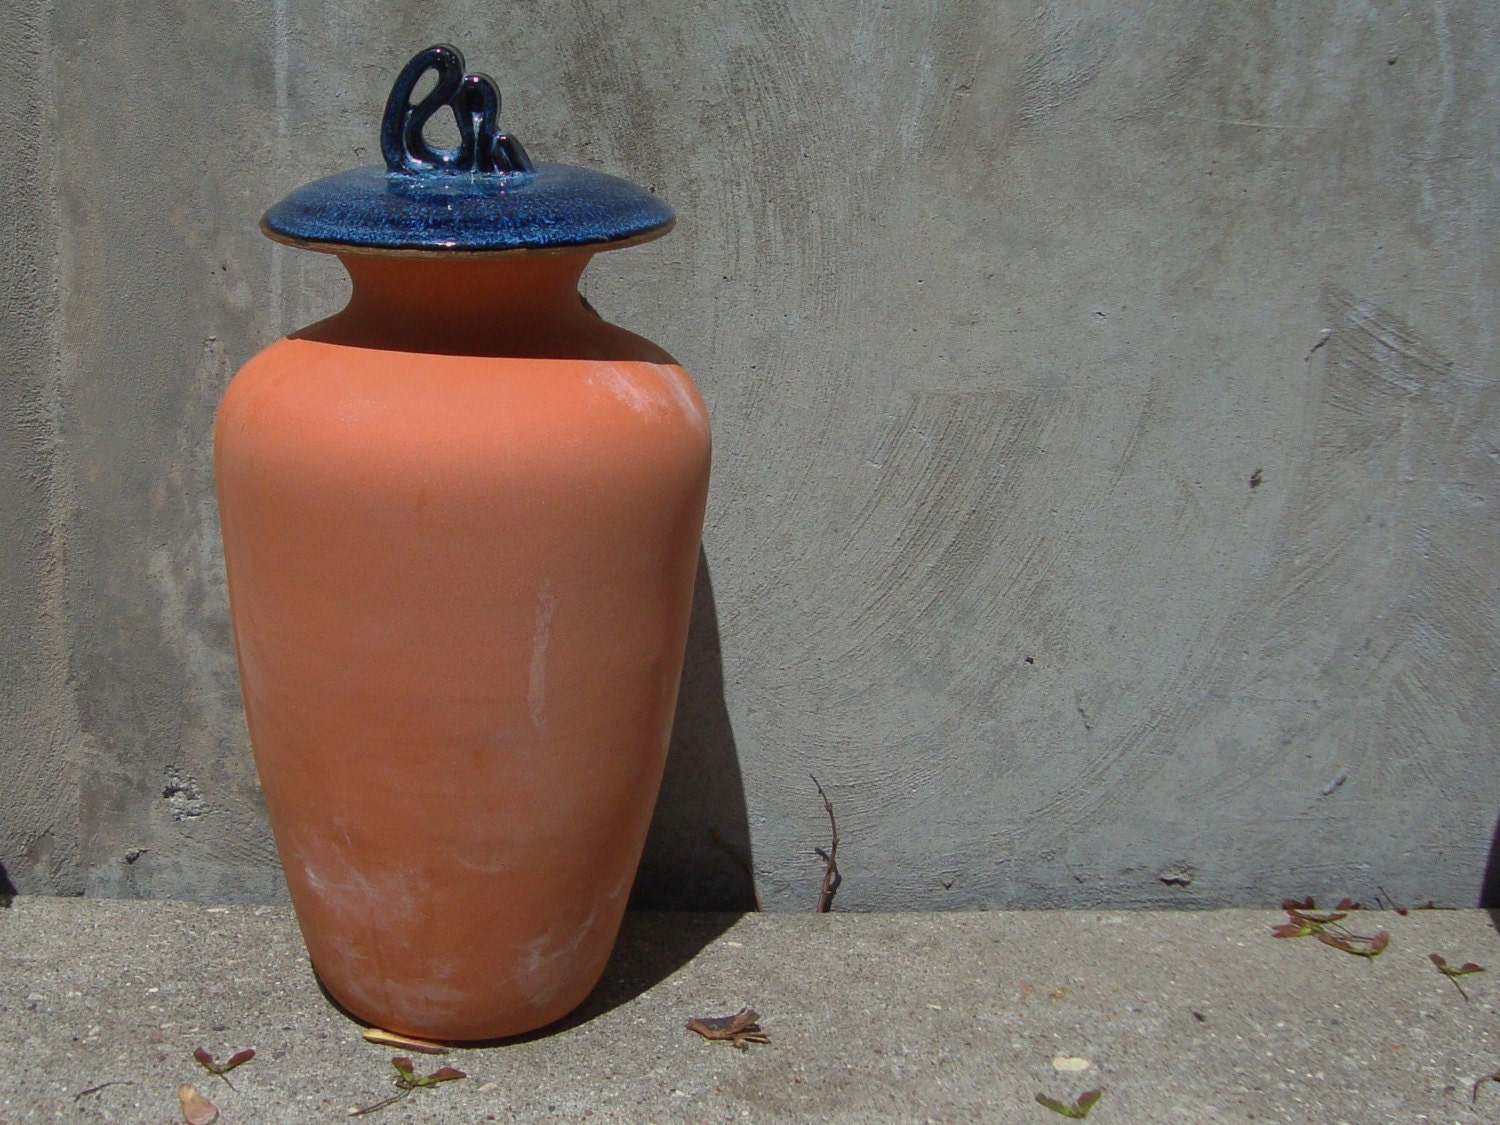 Olla Garden Irrigation Pot With Blue And Black Lid 1 25